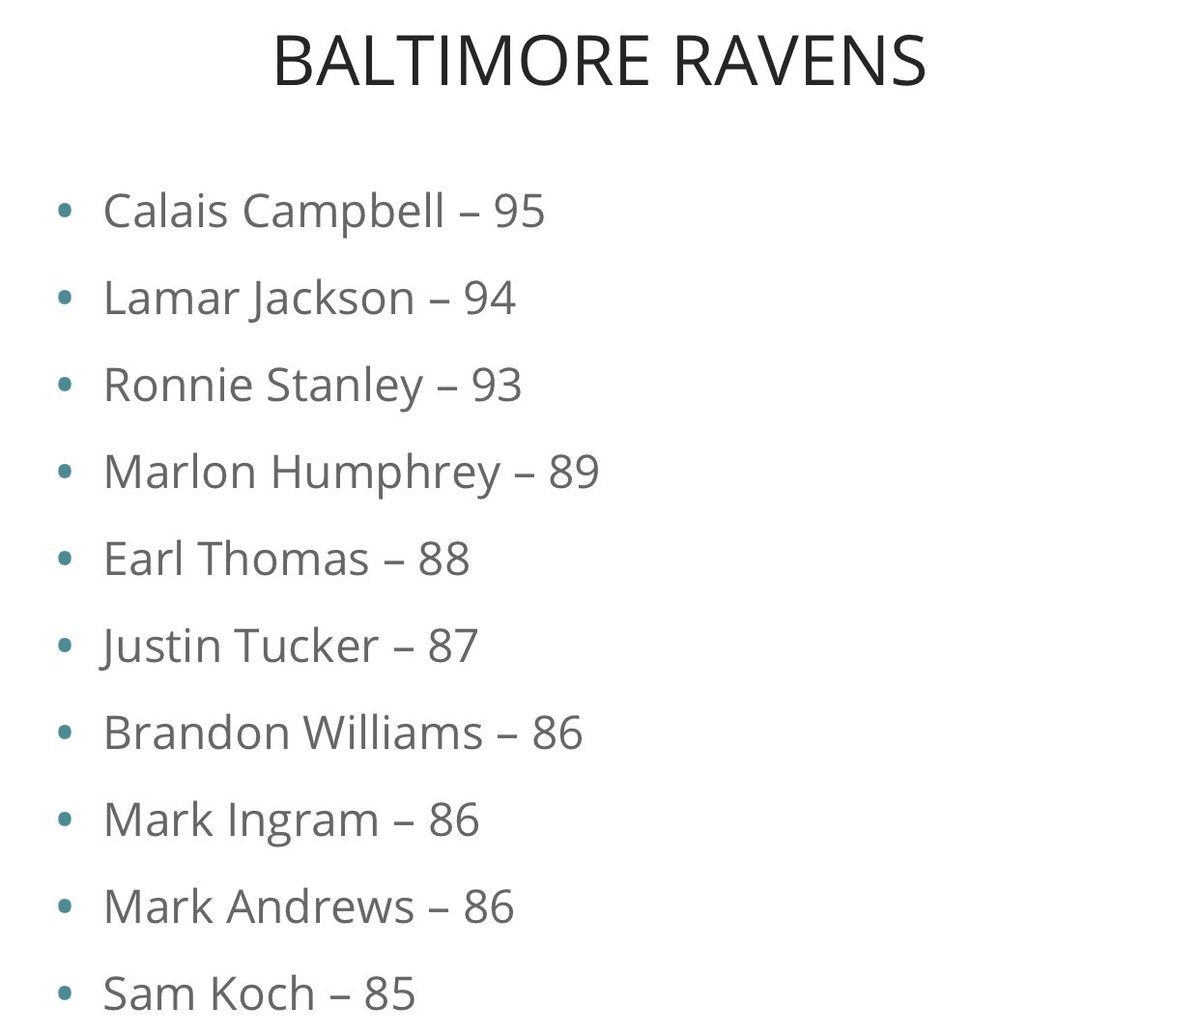 Per @Maddenschool here are your #RavensFlock highest rated #Madden21 players! Thoughts?